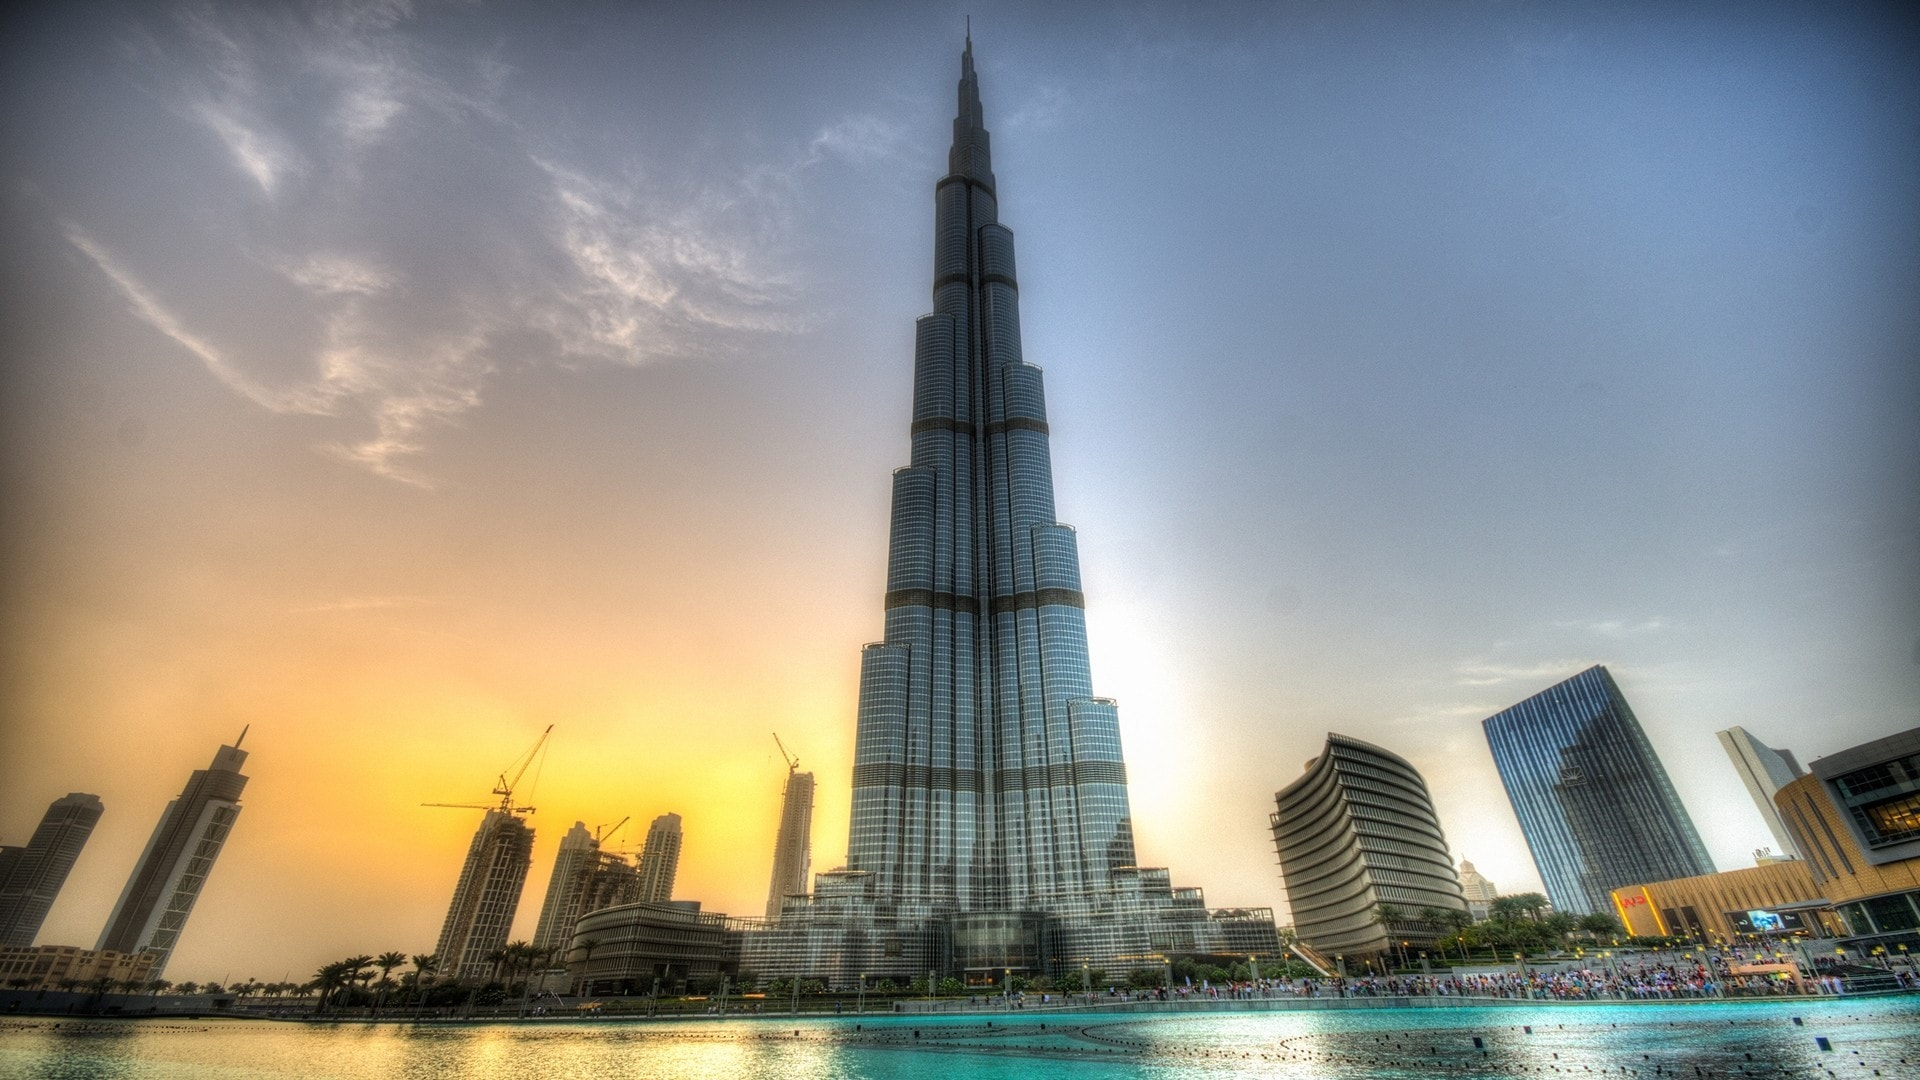 Fantastic Burj Khalifa Pictures % Quality HD Wallpapers 1920x1080